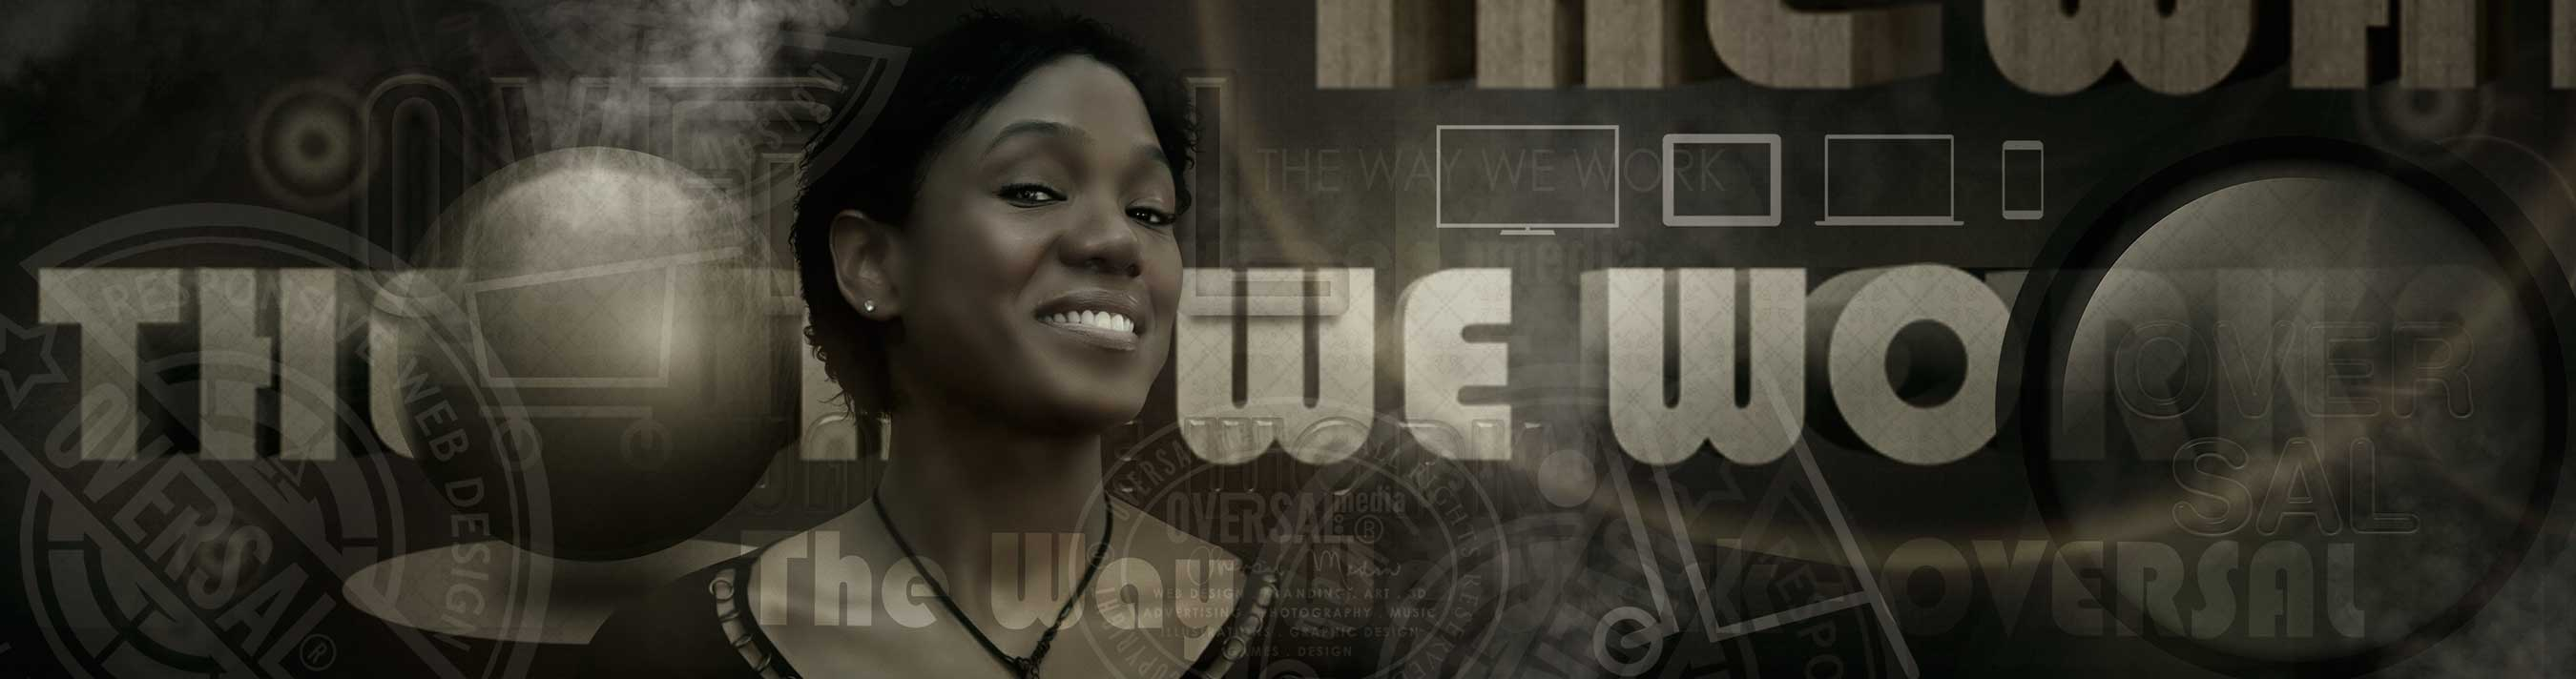 Smiling woman and 3D text - The way we work - Oversal